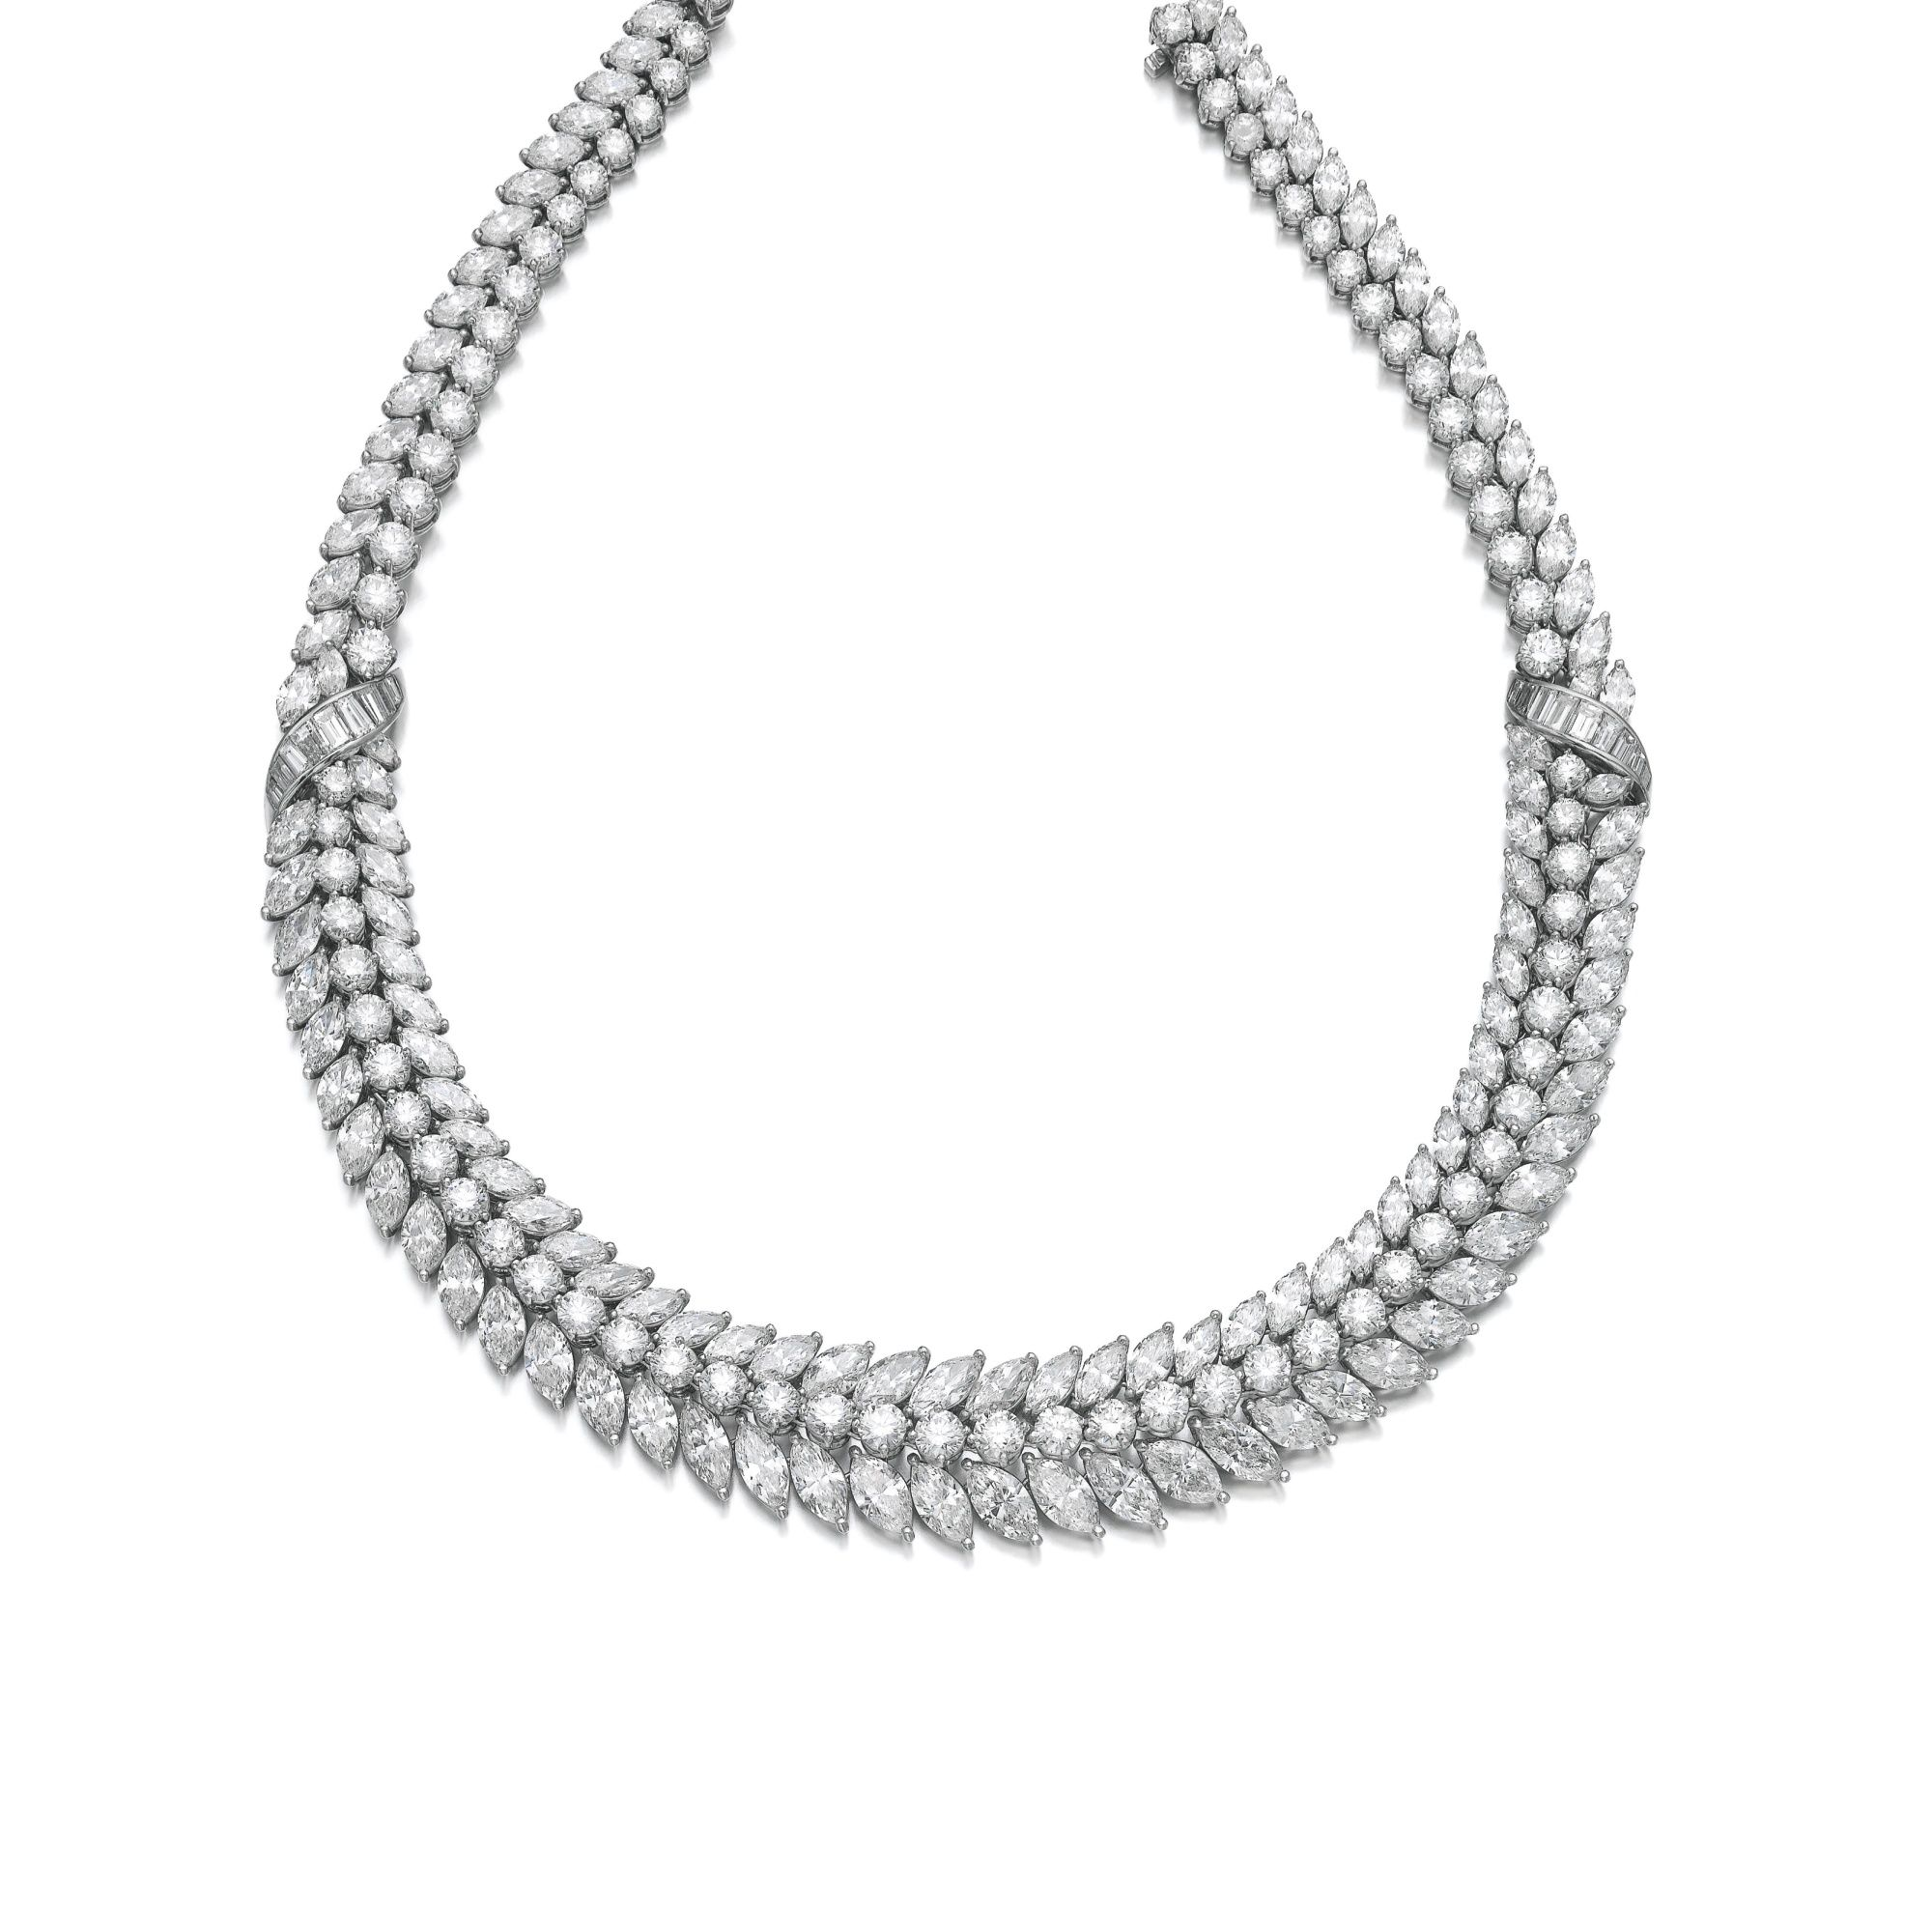 Diamond necklace lot sothebyus jewlery pinterest diamond